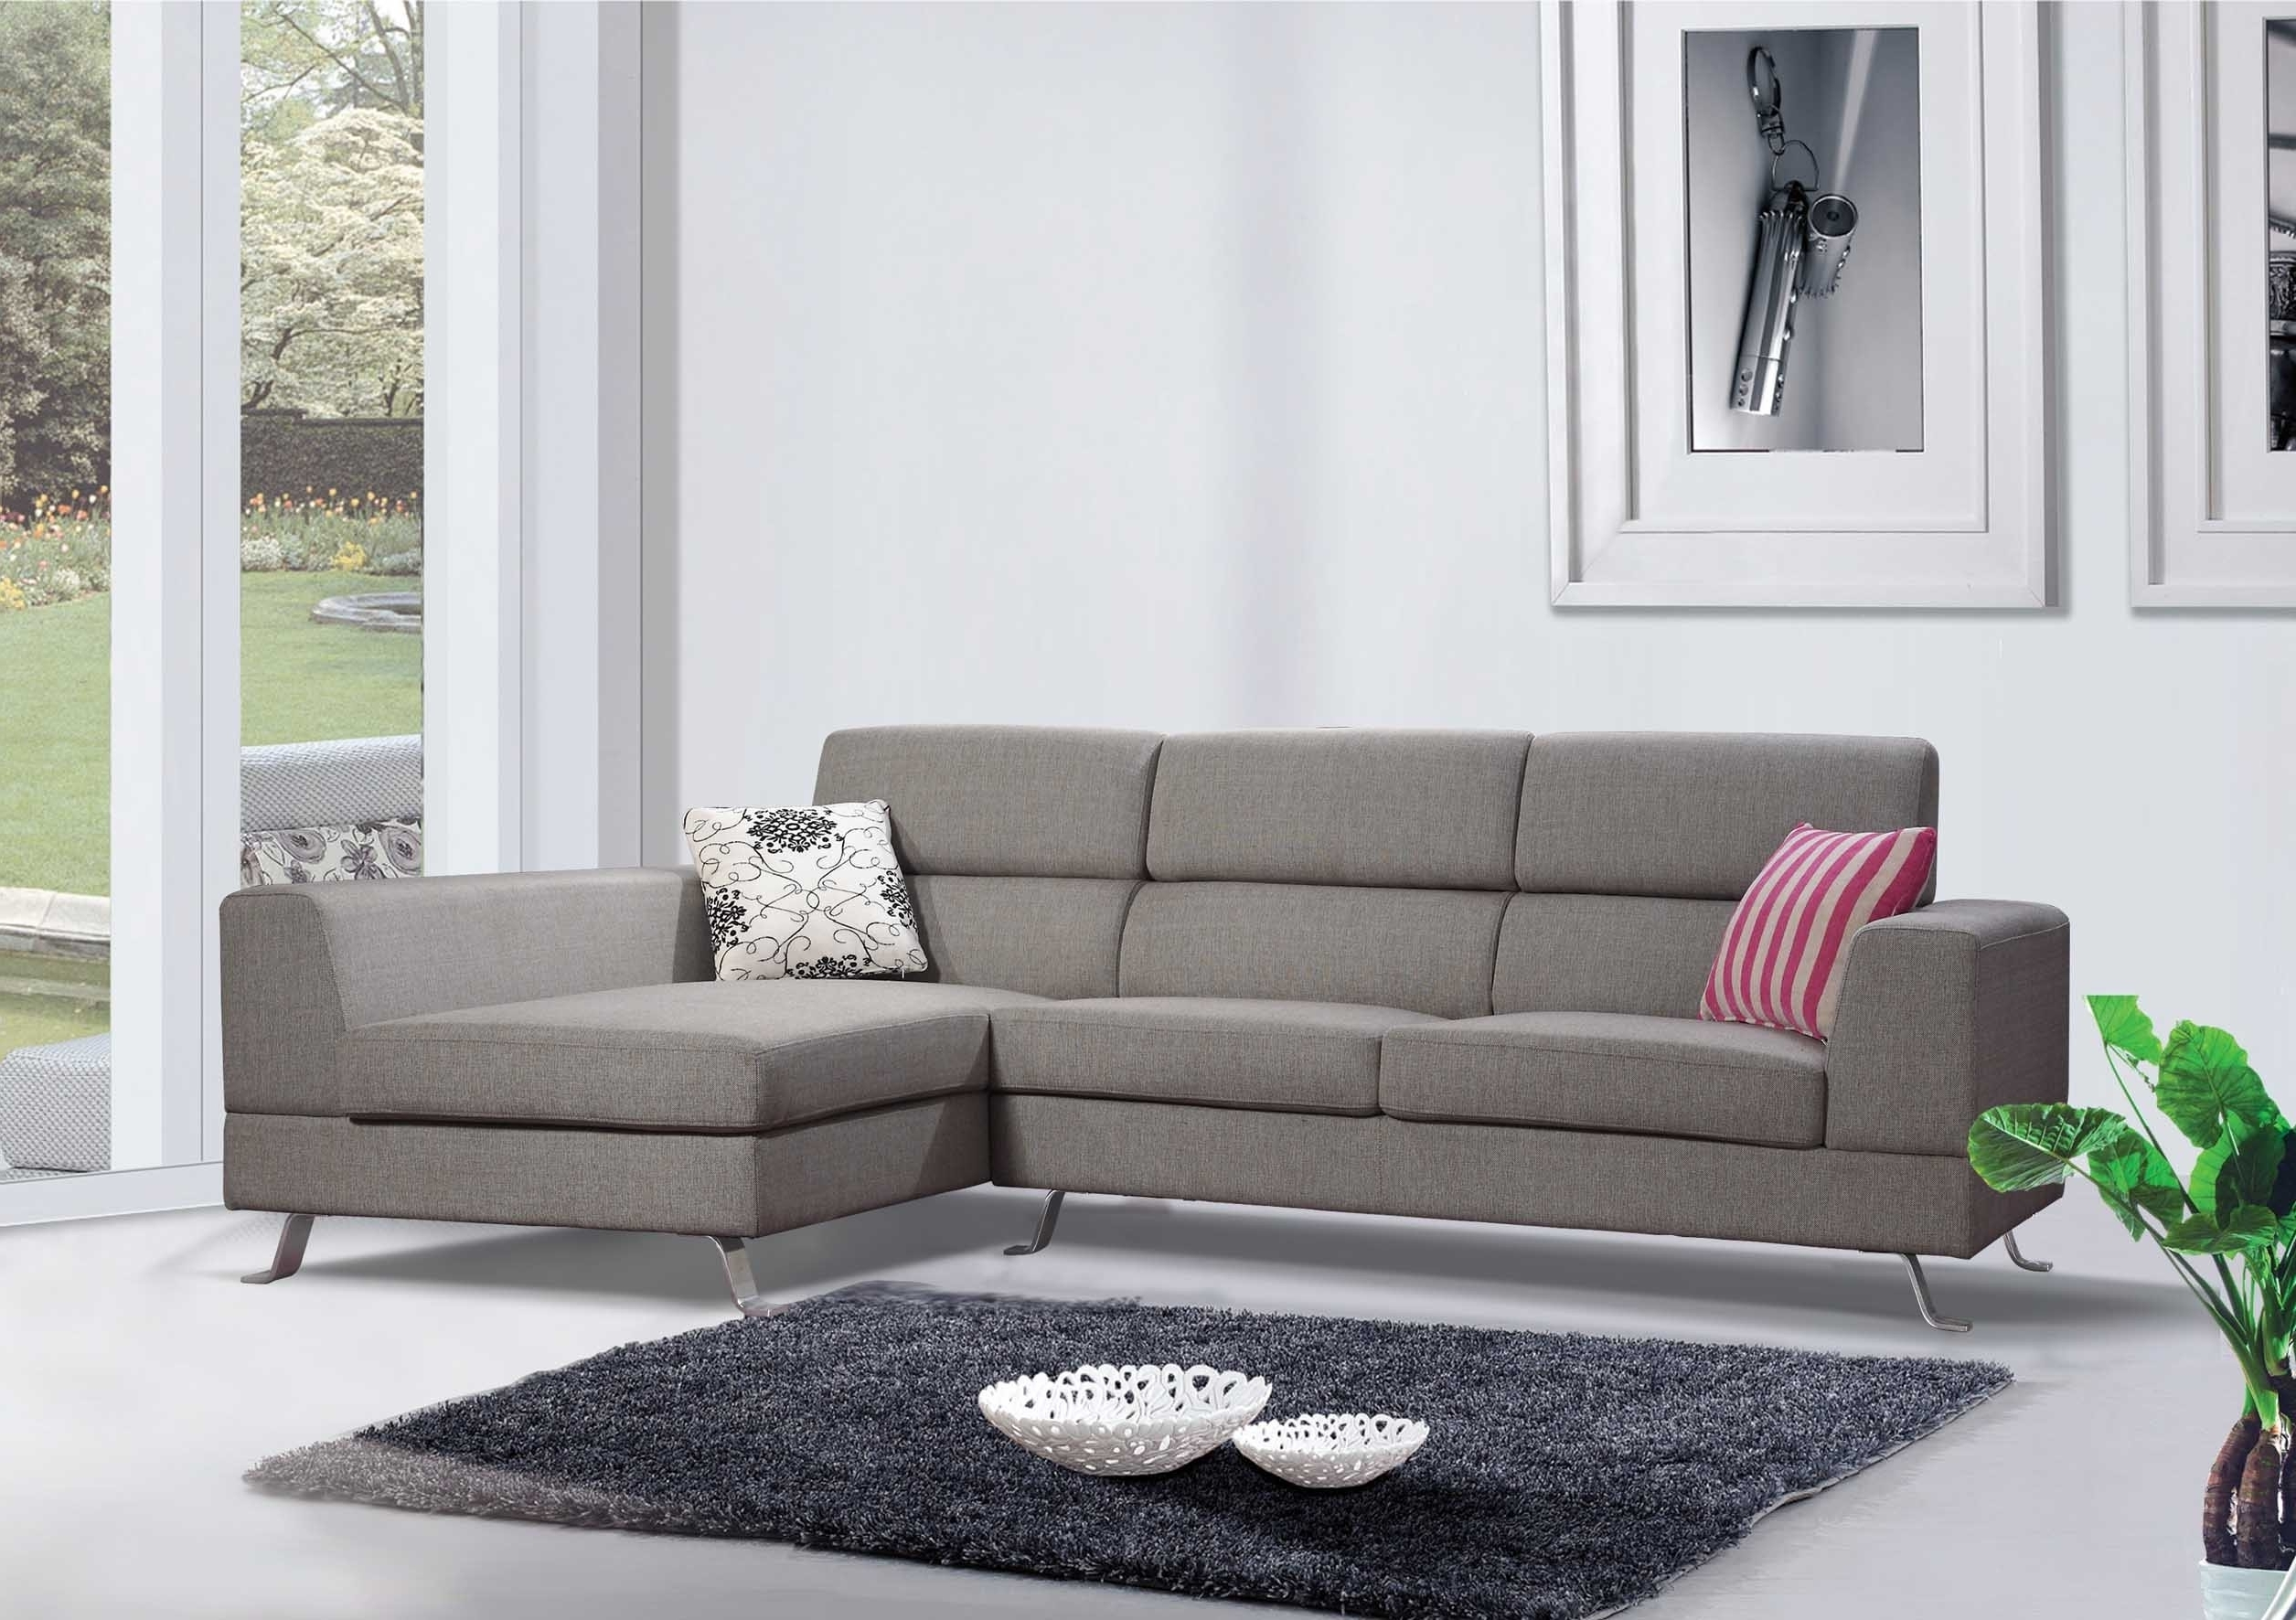 Superb Displaying Gallery Of Kijiji Montreal Sectional Sofas View Inzonedesignstudio Interior Chair Design Inzonedesignstudiocom